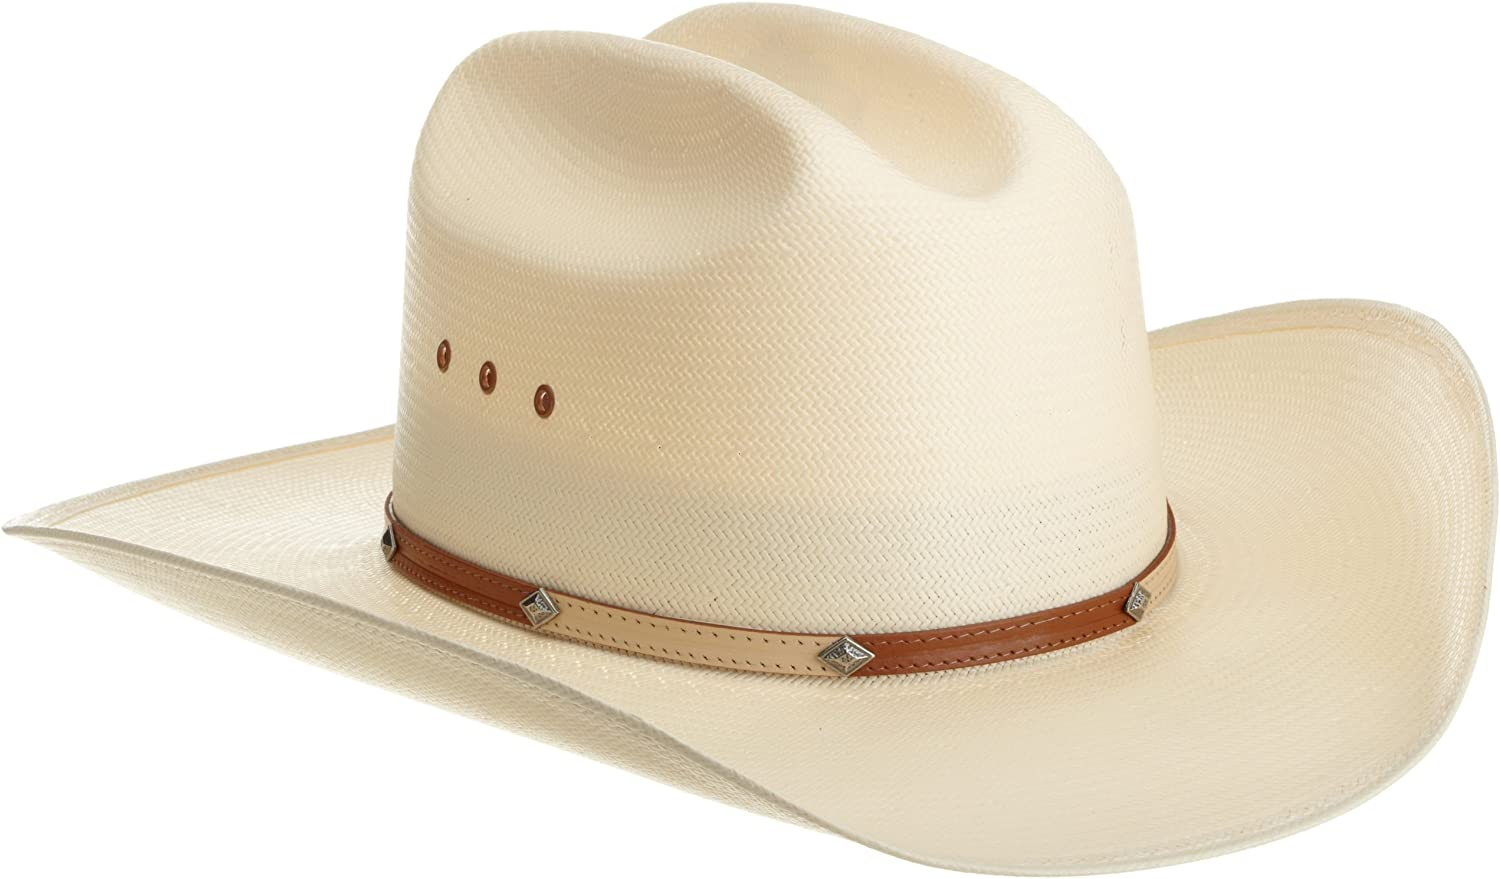 Max 42% OFF Limited time sale Stetson Men's Hat Maddock